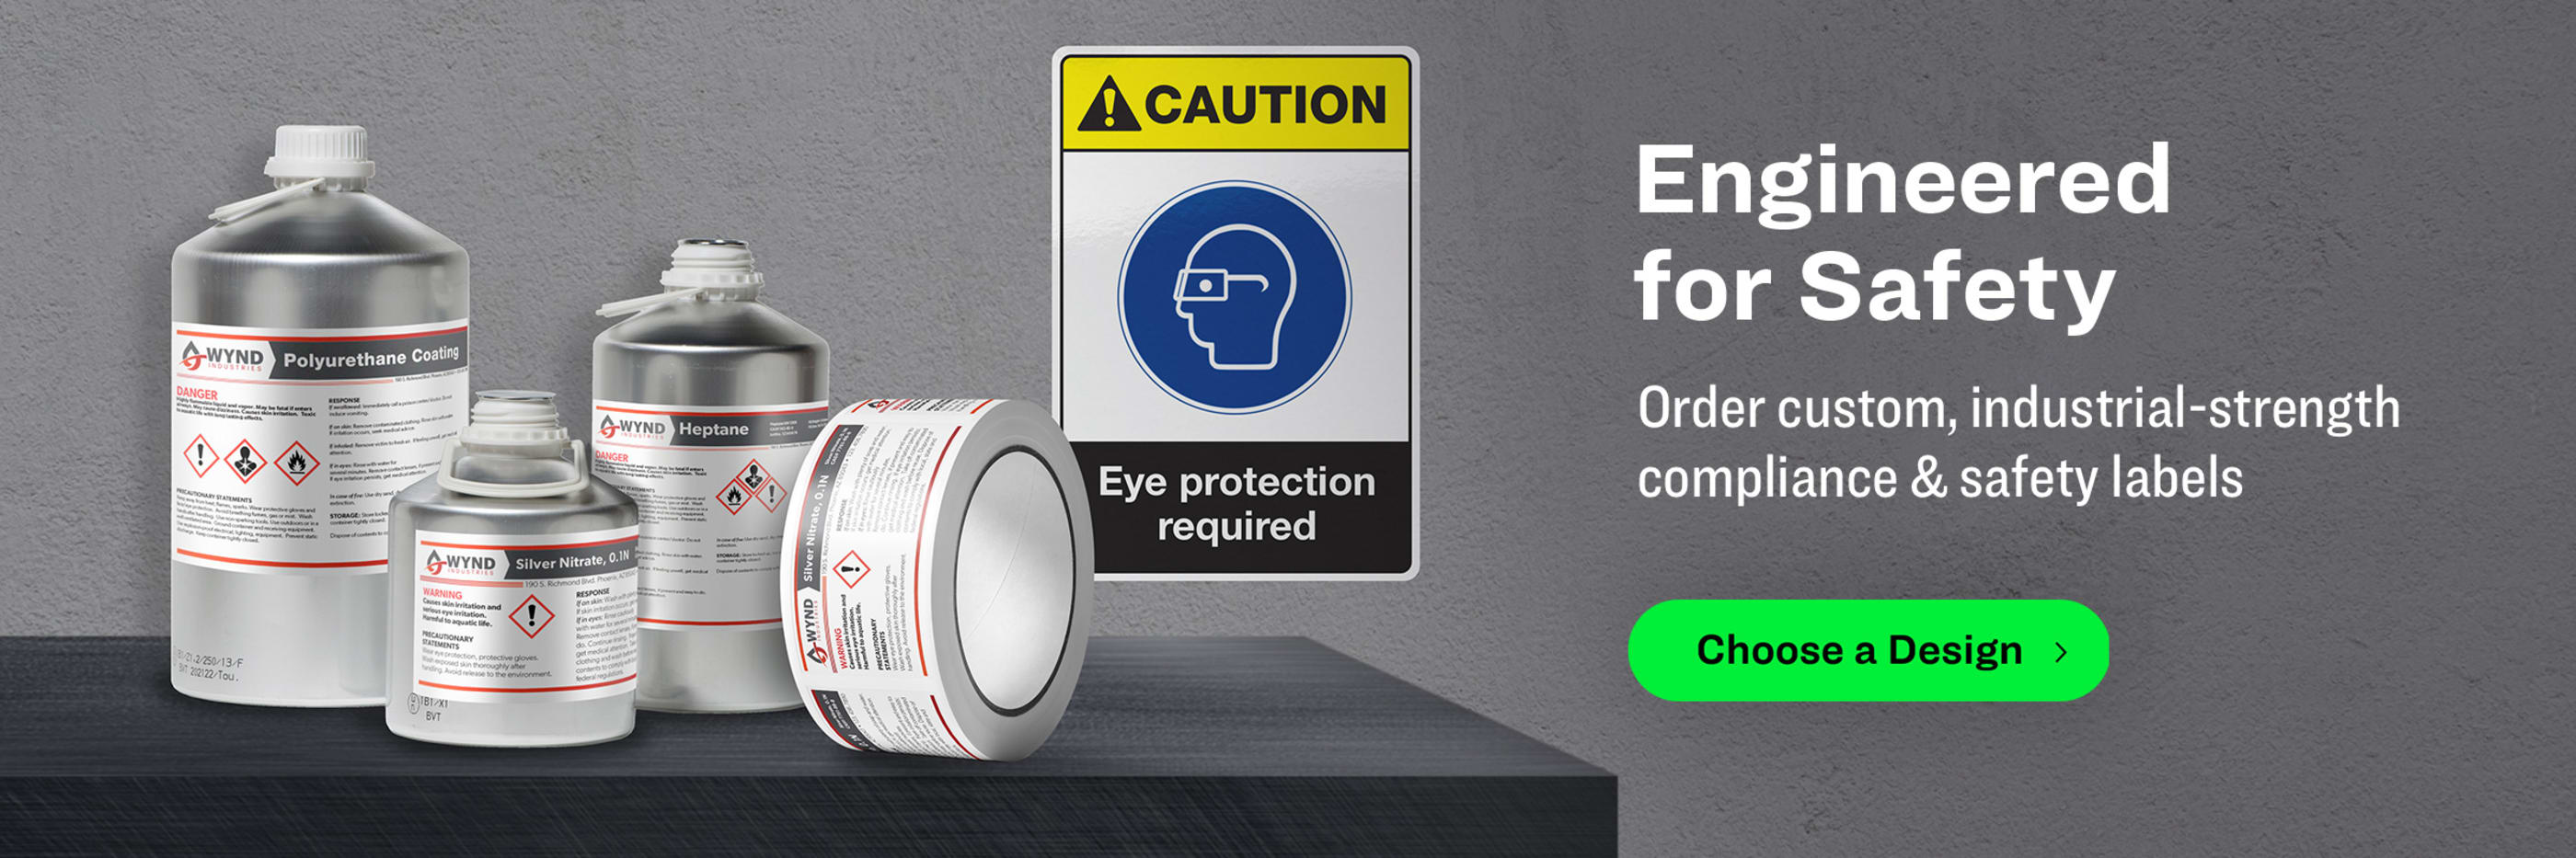 Engineered for Safety. Order custom, industrial-strength compliance & safety labels